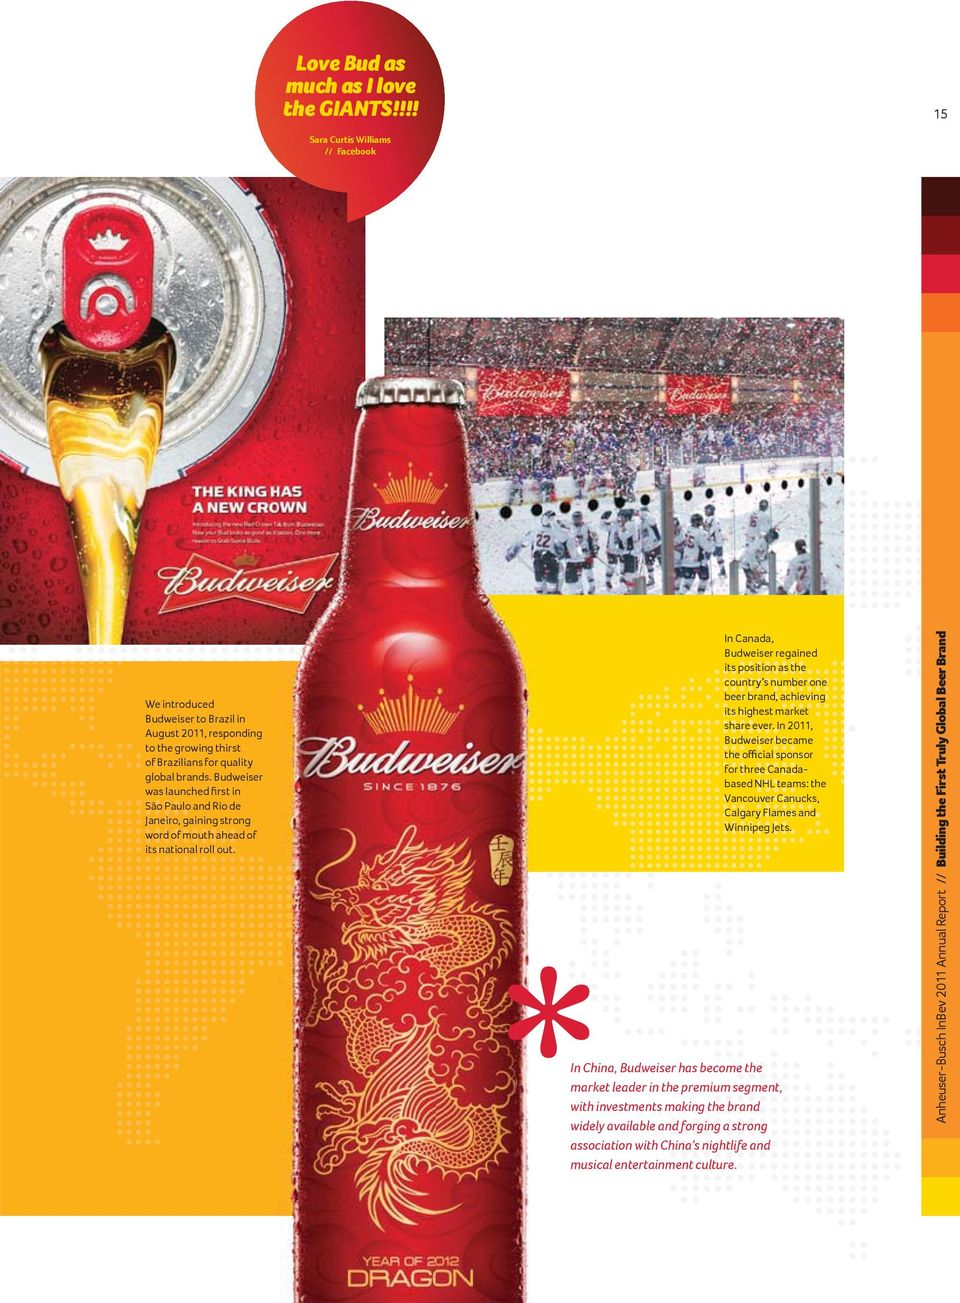 In Canada, Budweiser regained its position as the country s number one beer brand, achieving its highest market share ever.